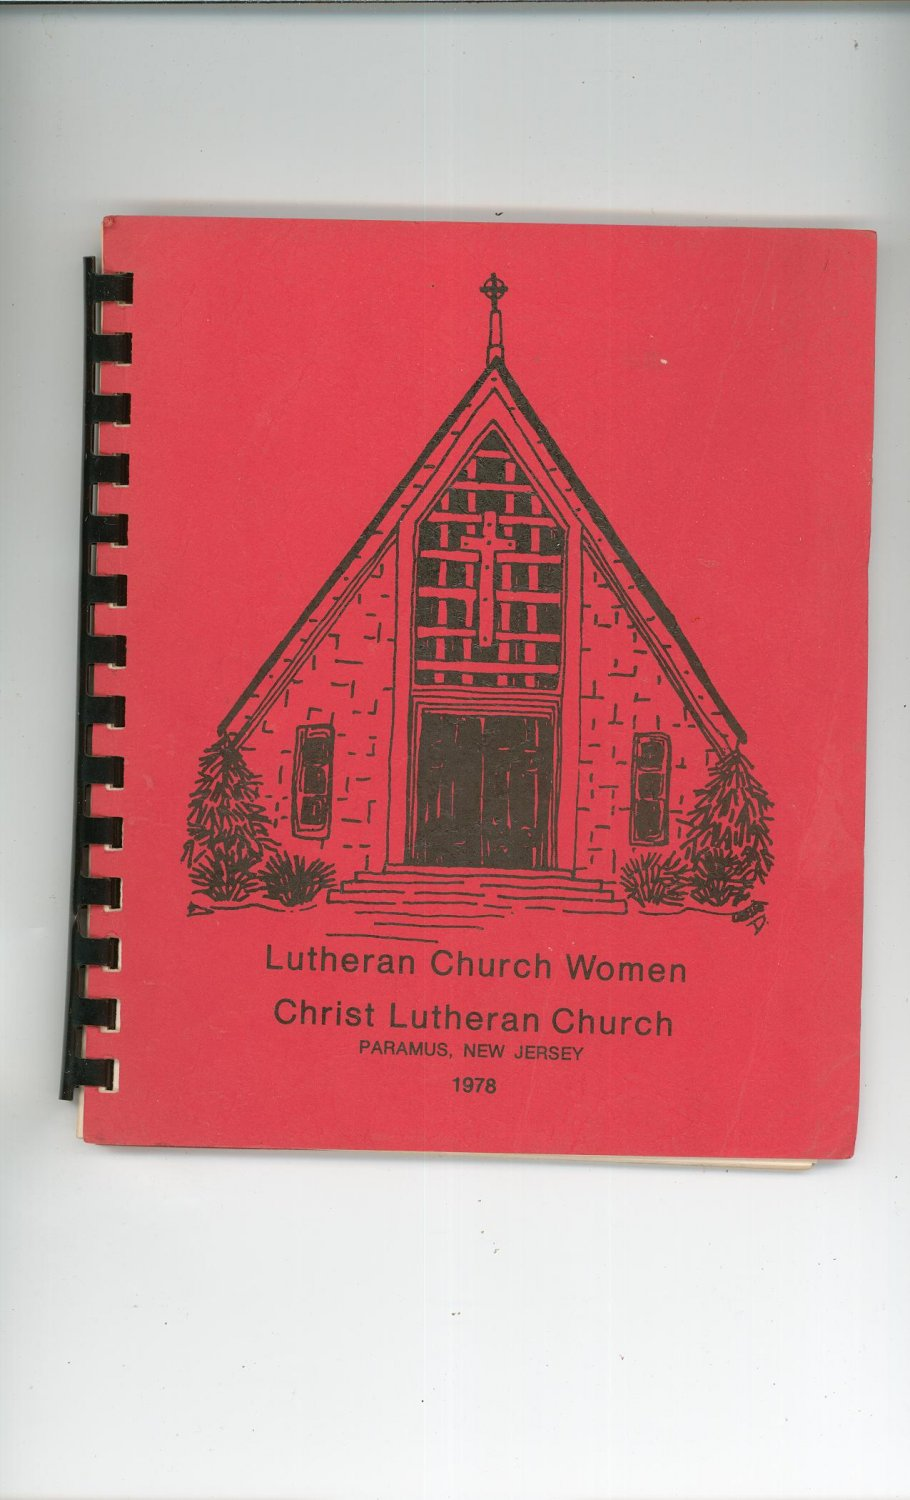 Vintage Lutheran Church Women Cookbook Regional New Jersey 1978